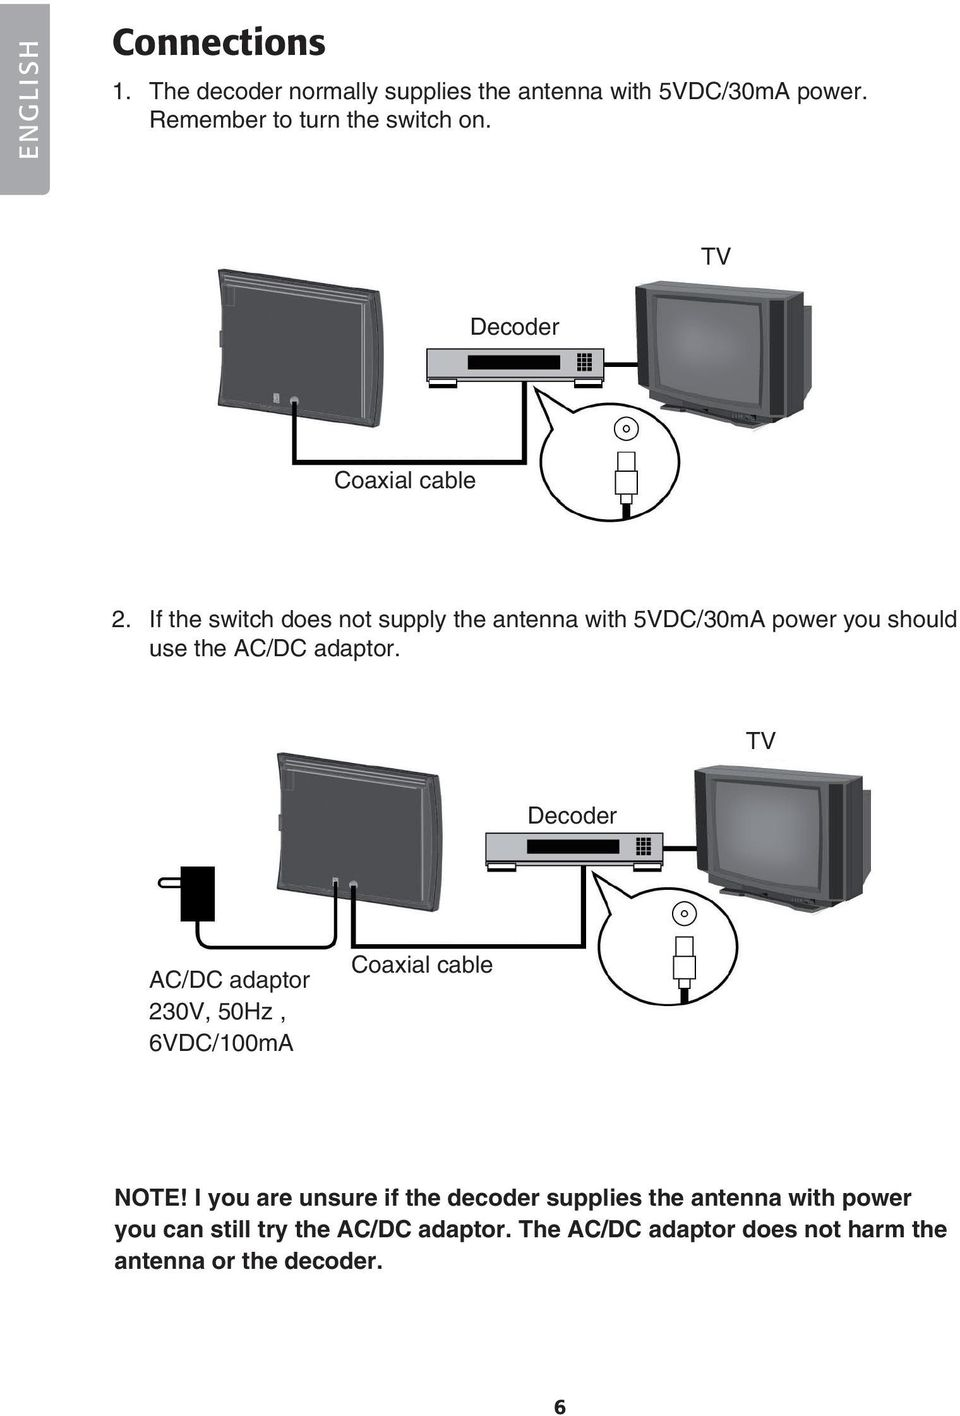 If the switch does not supply the antenna with 5VDC/30mA power you should use the AC/DC adaptor.